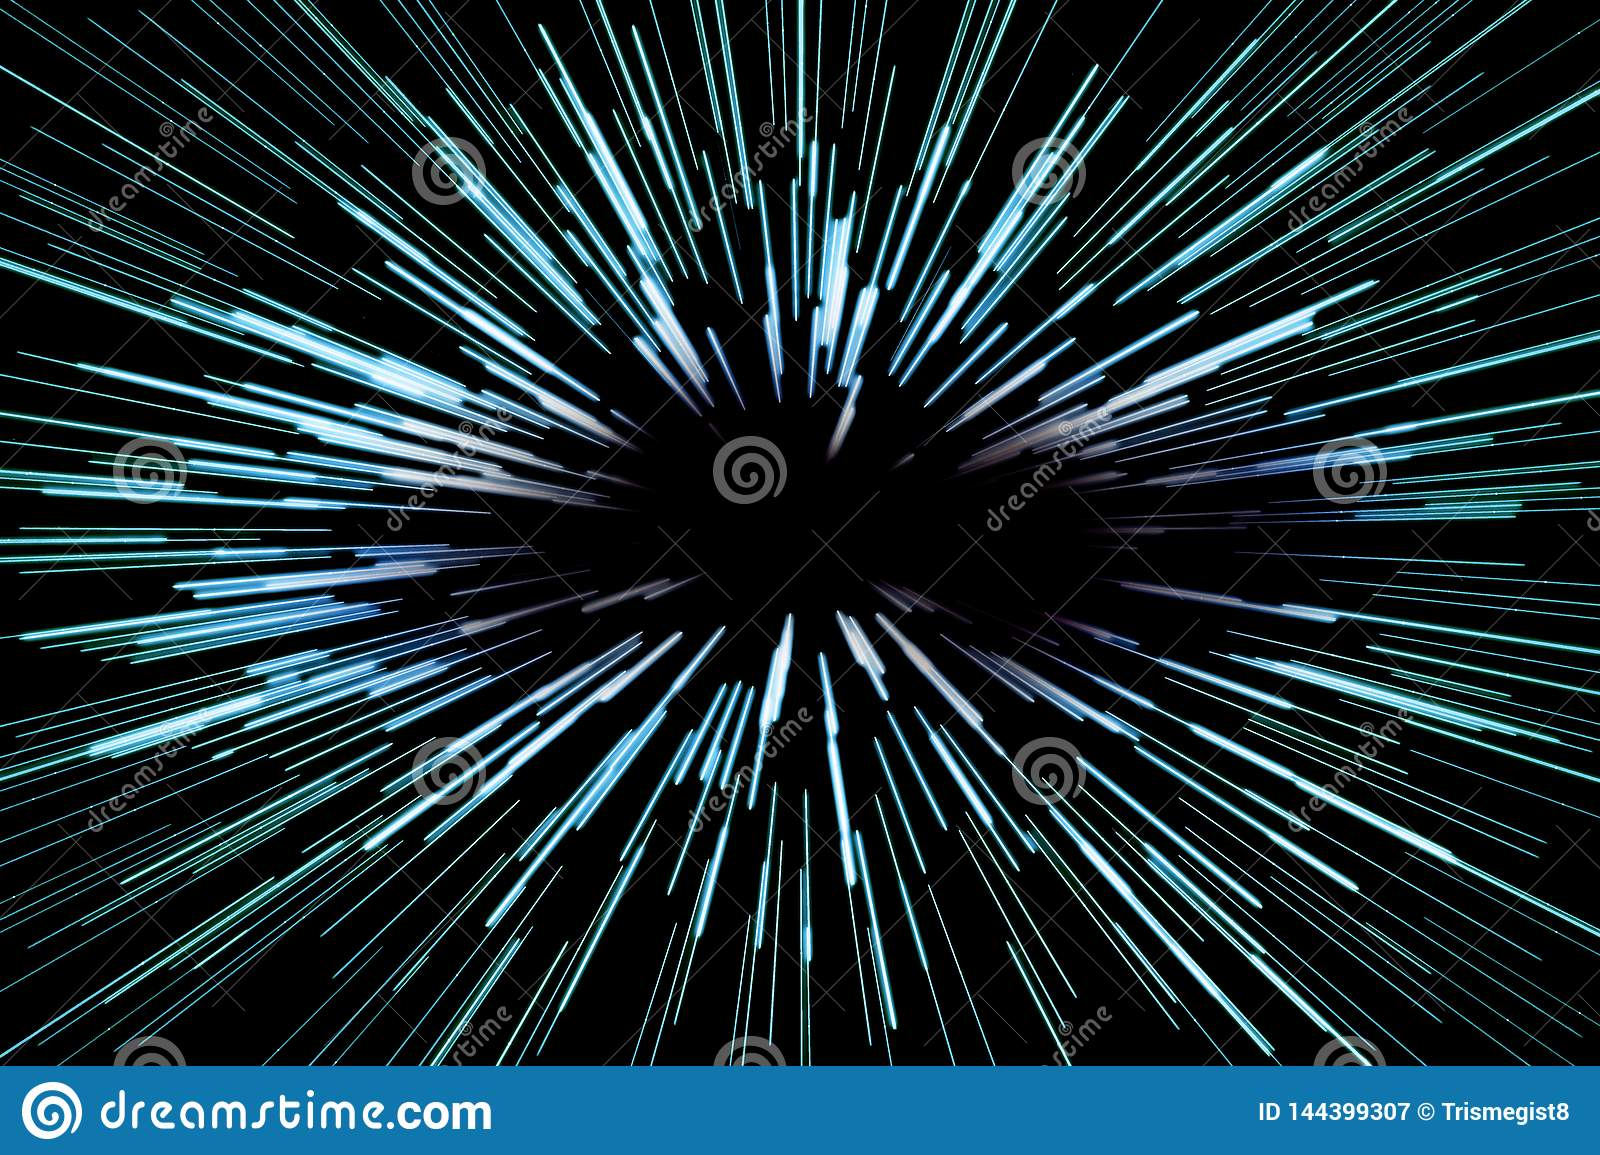 Super speed abstract background with blue lines on black background, fast forward, concept.